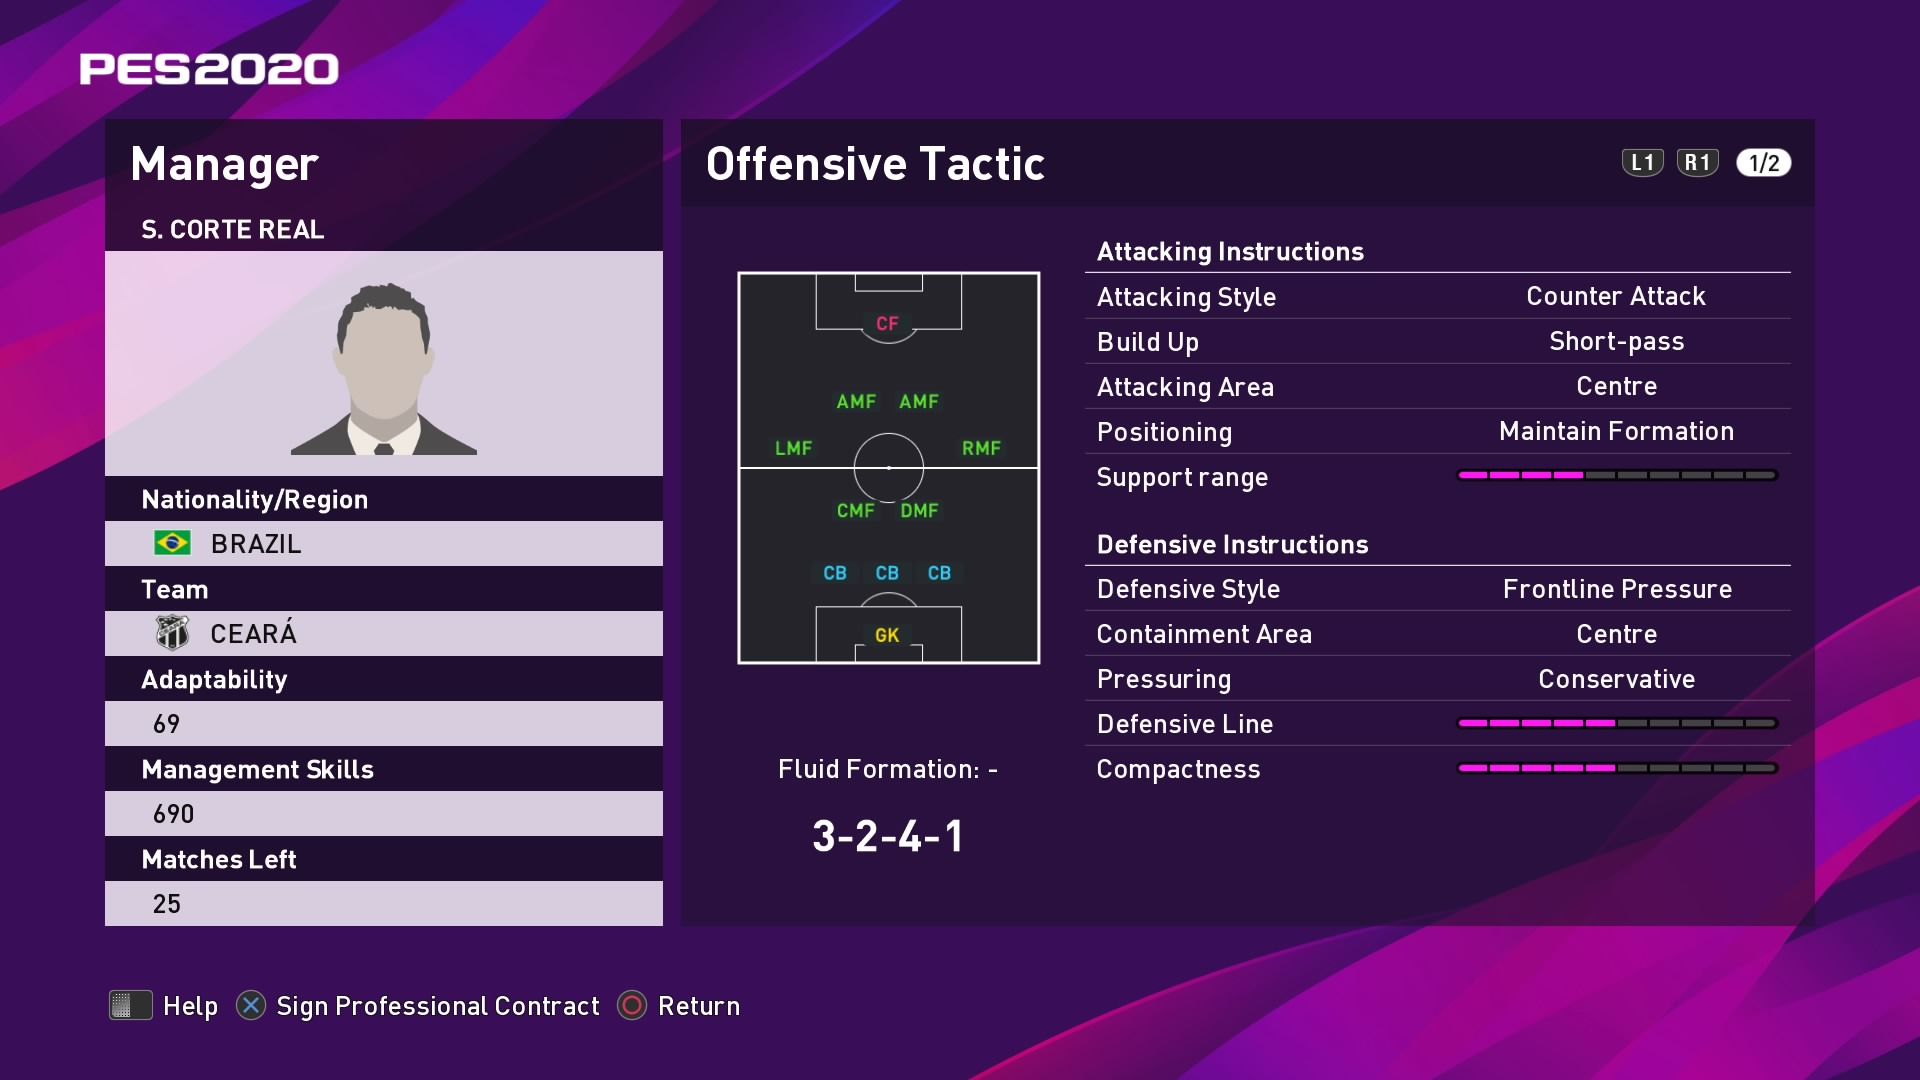 S. Corte Real (Enderson Moreira) Offensive Tactic in PES 2020 myClub